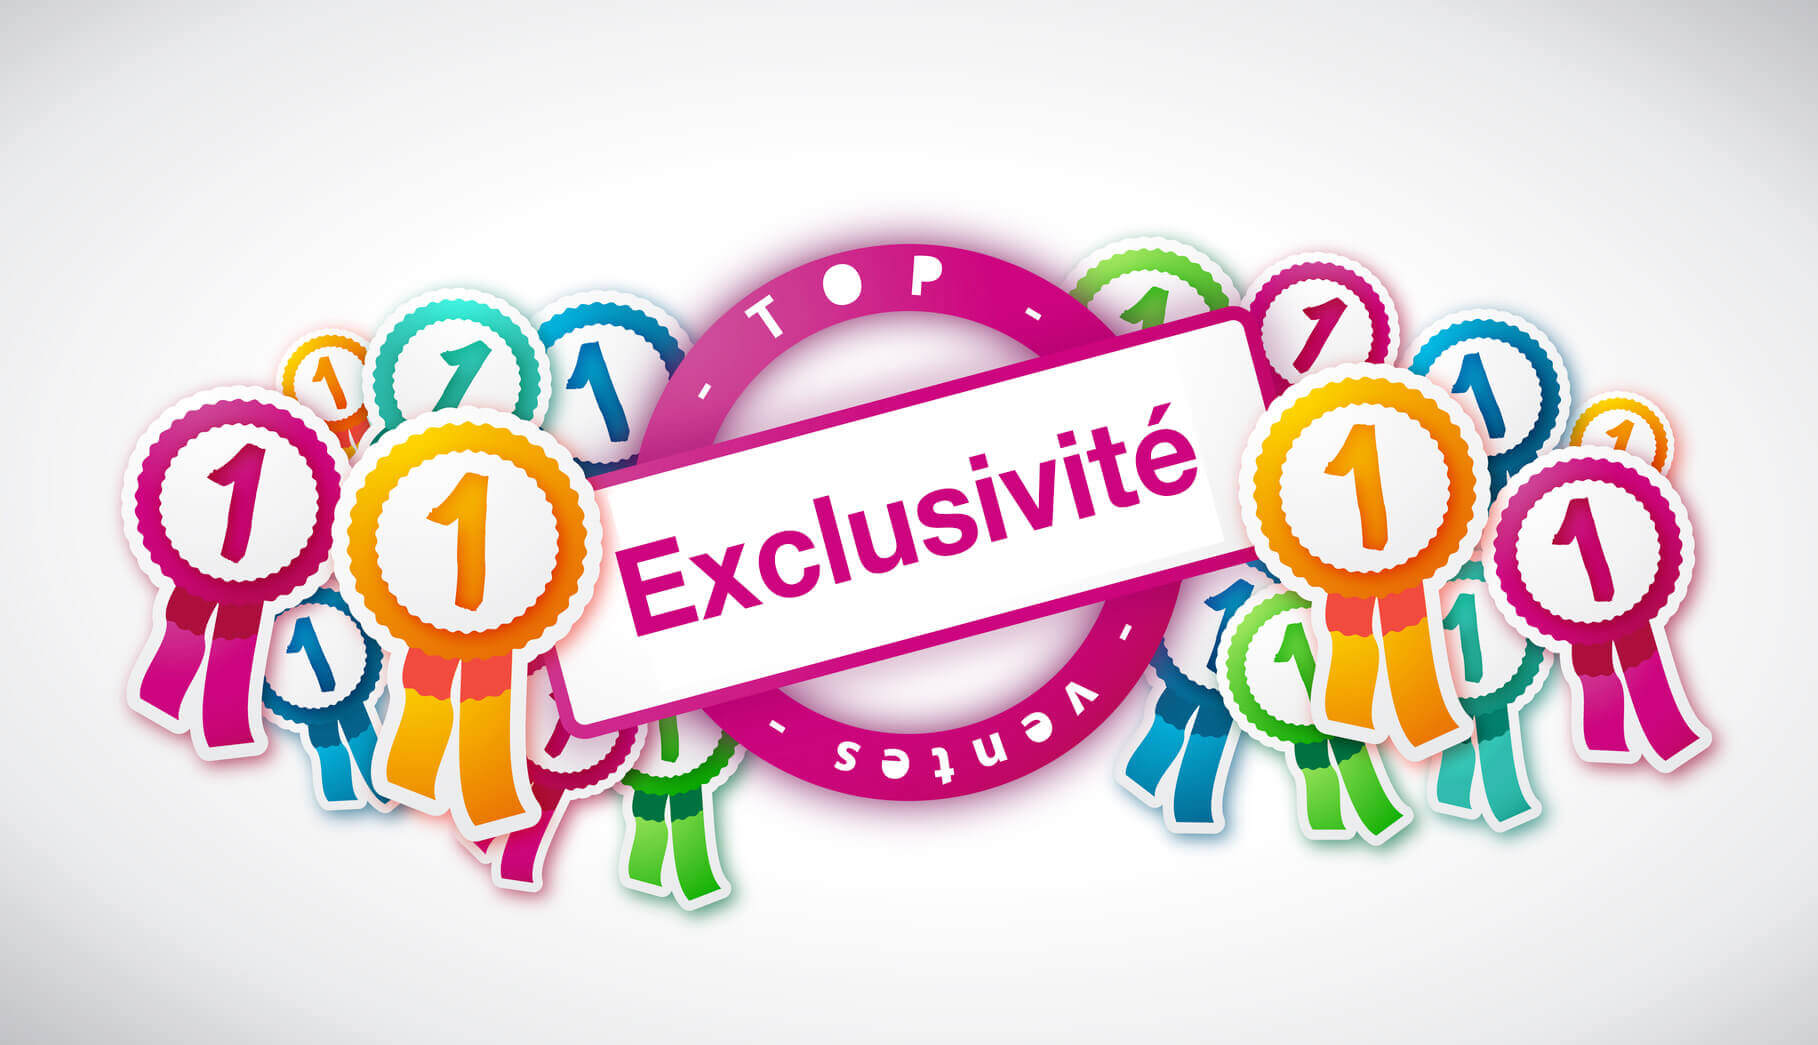 exclusivité-1